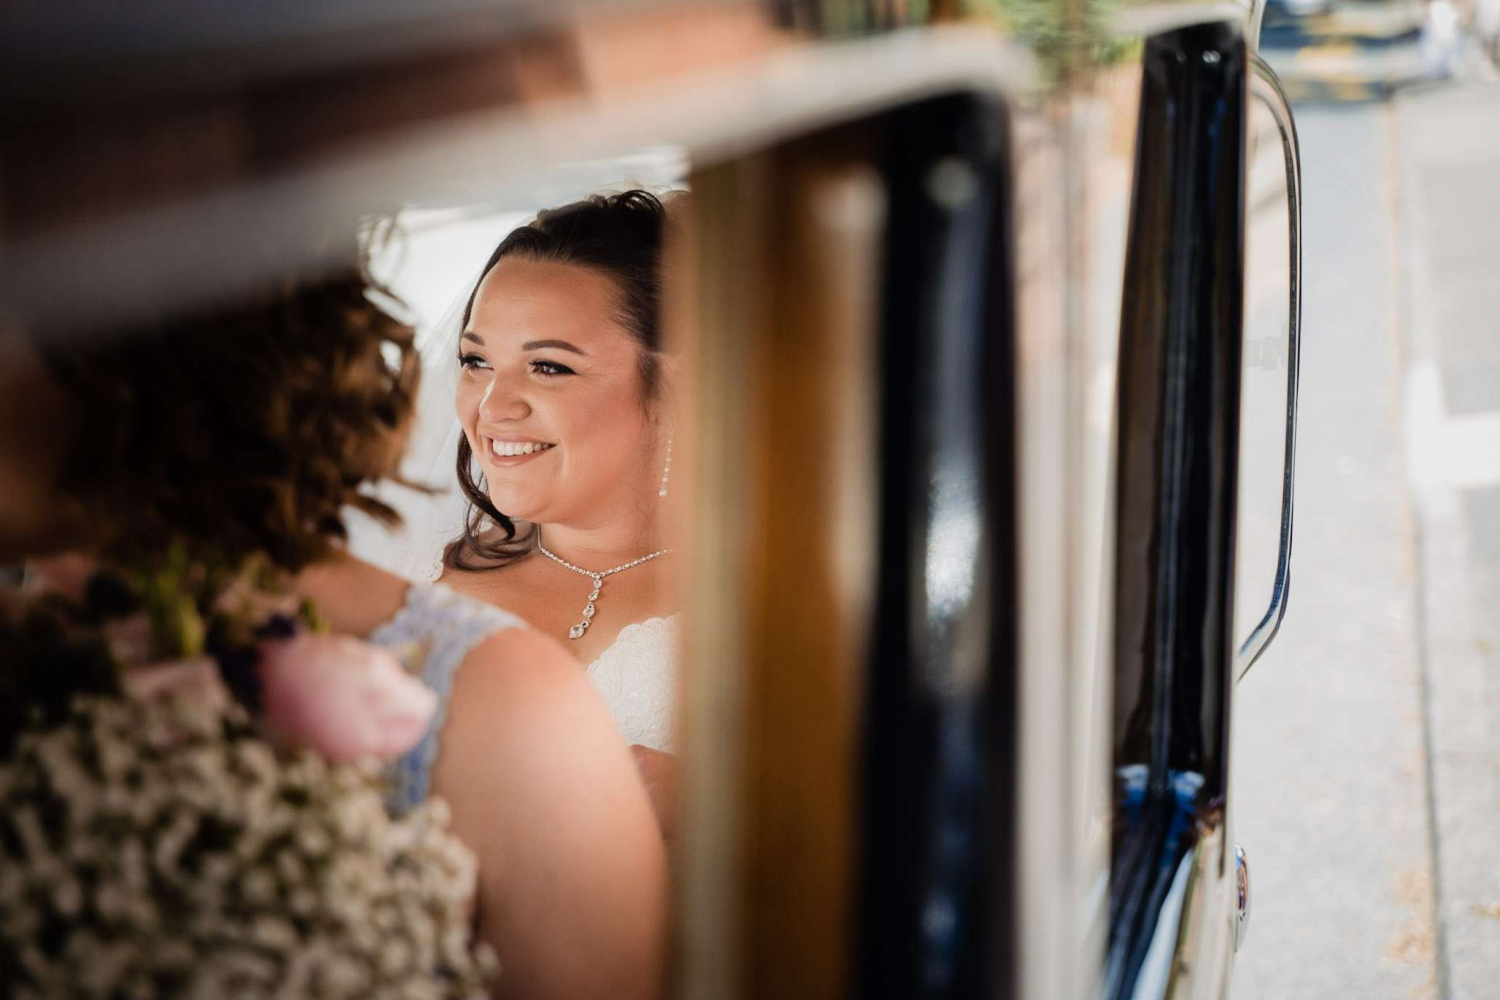 A bride arriving at a church in Hampshire as she is about to get married